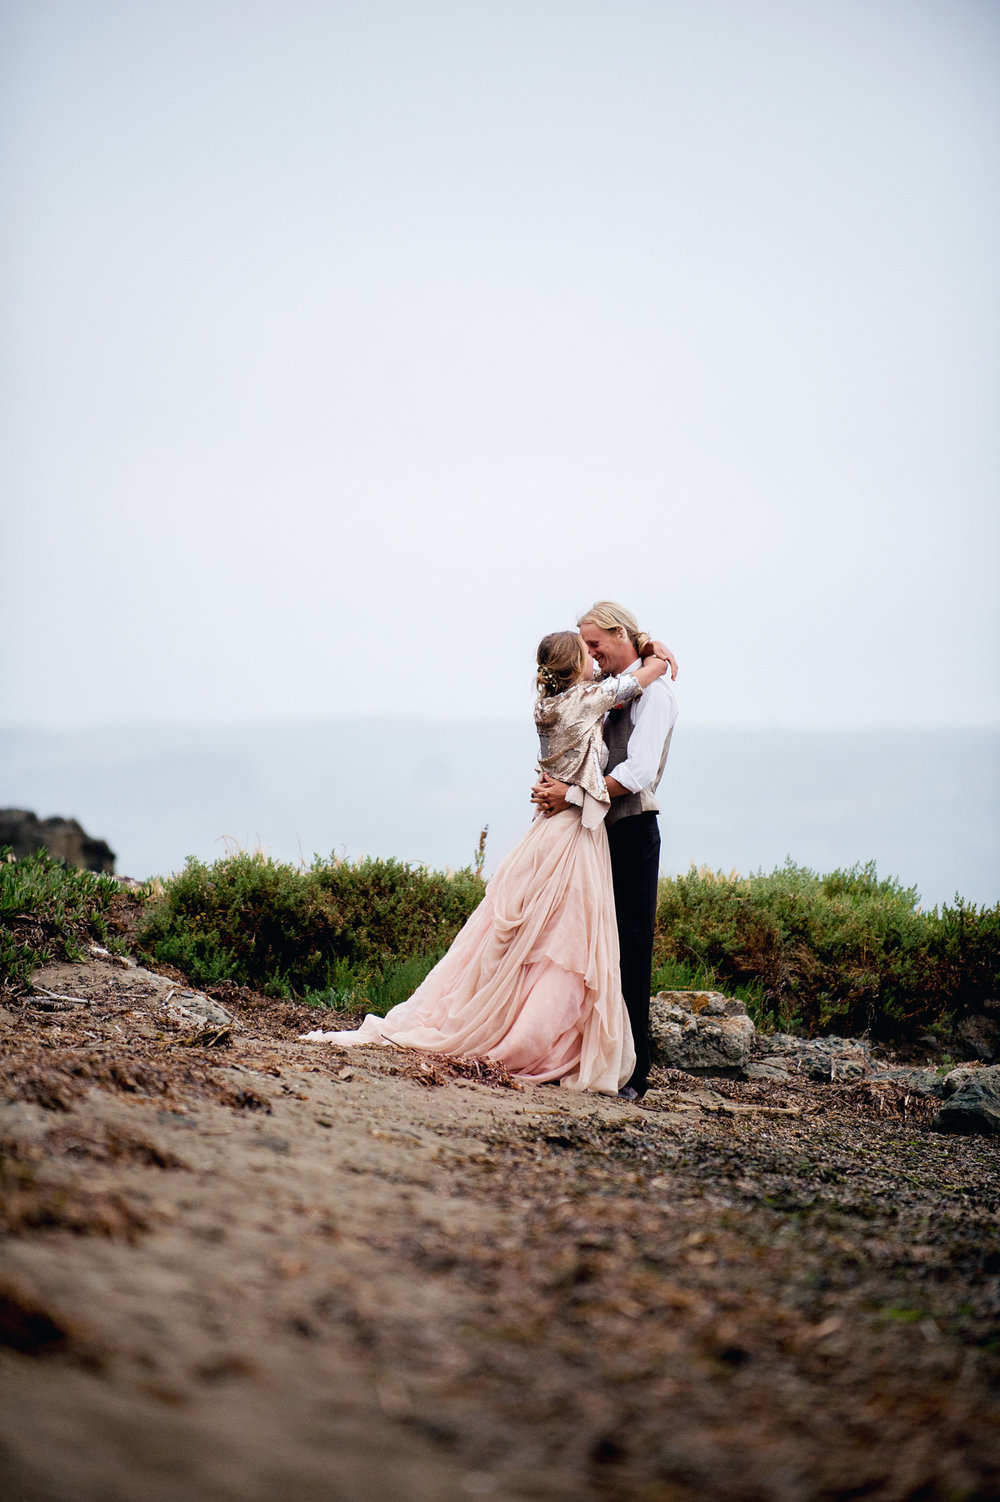 Carol Hannah Bridal Tritea, Kensington, Sequin Smoking Jacket Silver Linings Veil3704.jpg